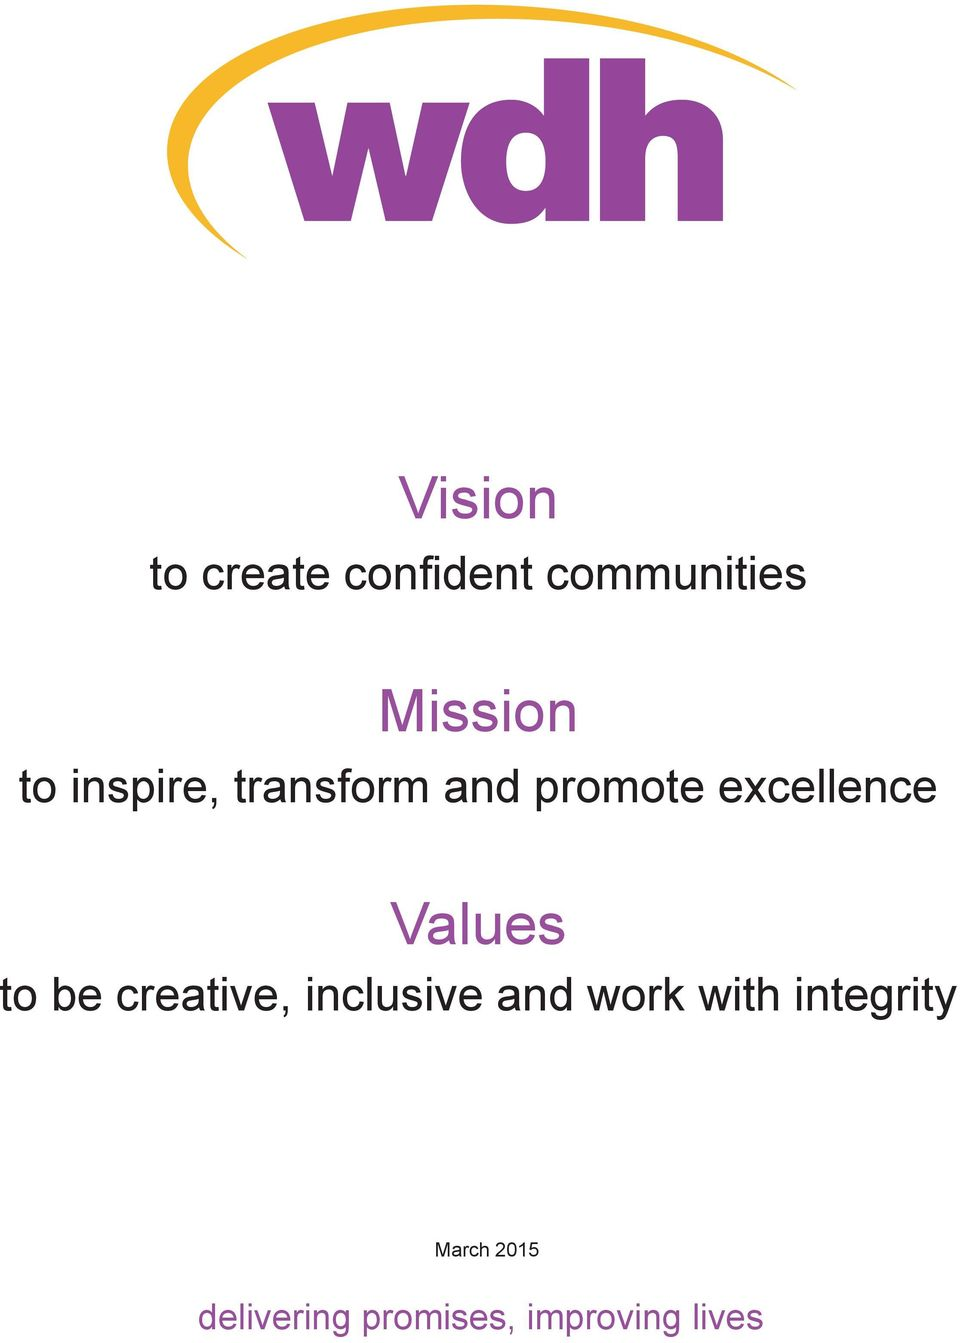 Values to be creative, inclusive and work with